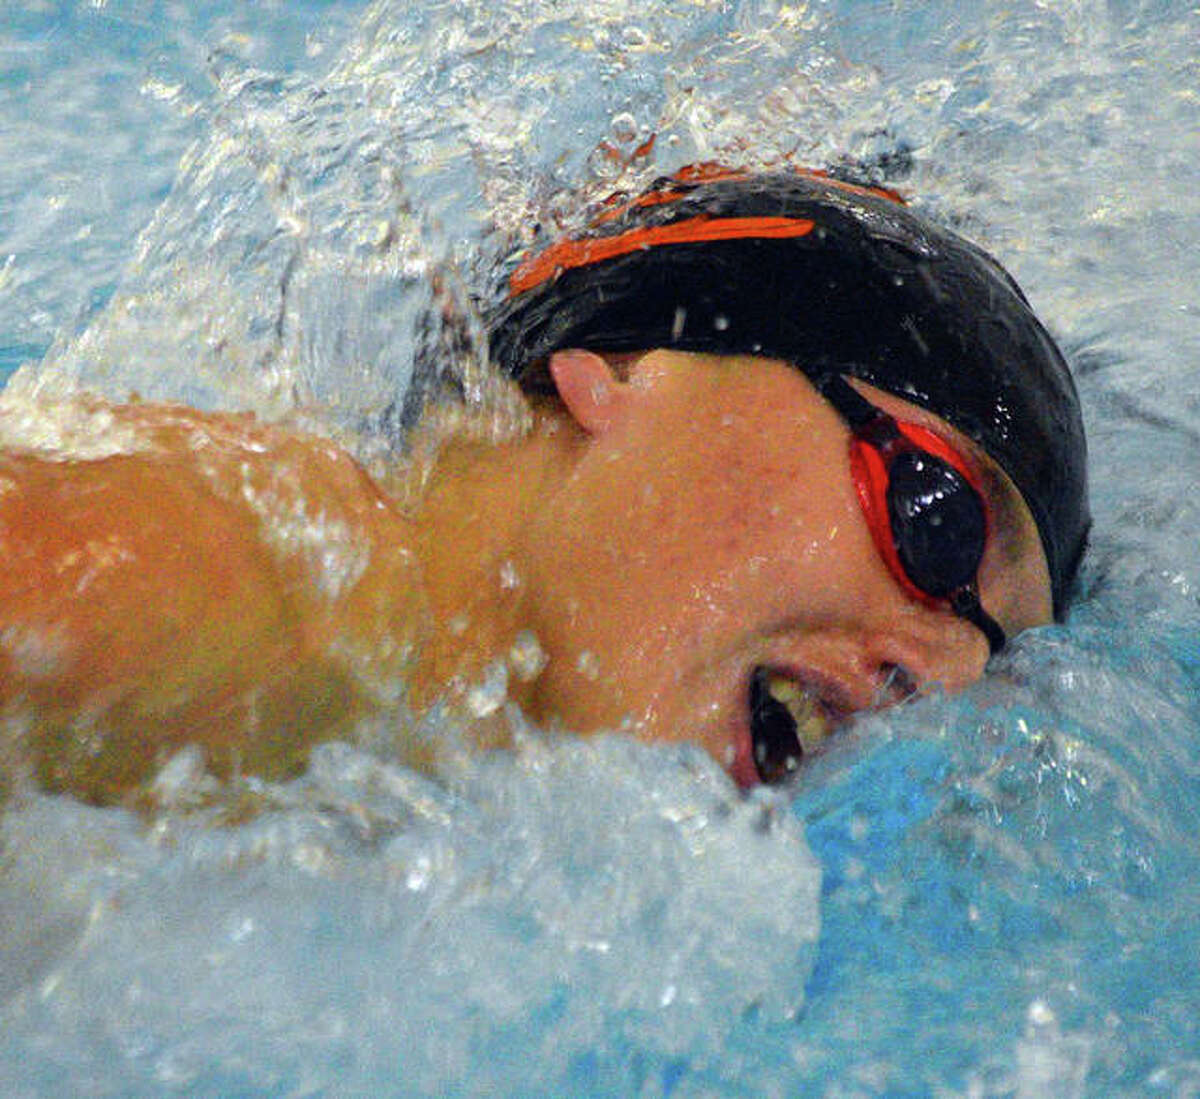 Edwardsville's Evan Grinter picked up a pair of individual wins and a relay victory in Tuesday's season-opening victory over O'Fallon inside the Chuck Fruit Aquatic Center.